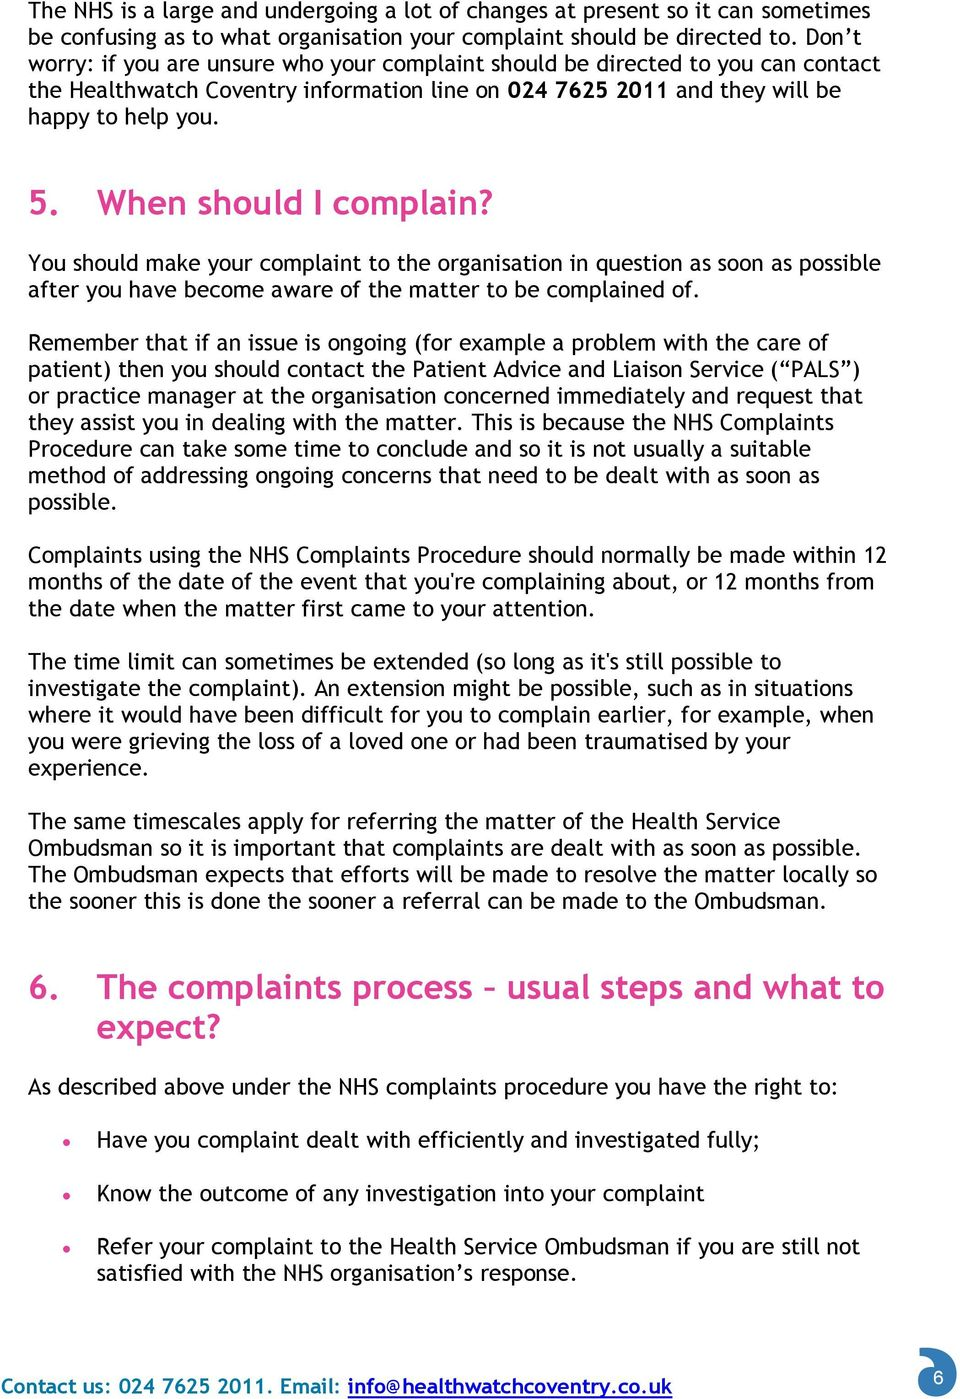 When should I complain? You should make your complaint to the organisation in question as soon as possible after you have become aware of the matter to be complained of.